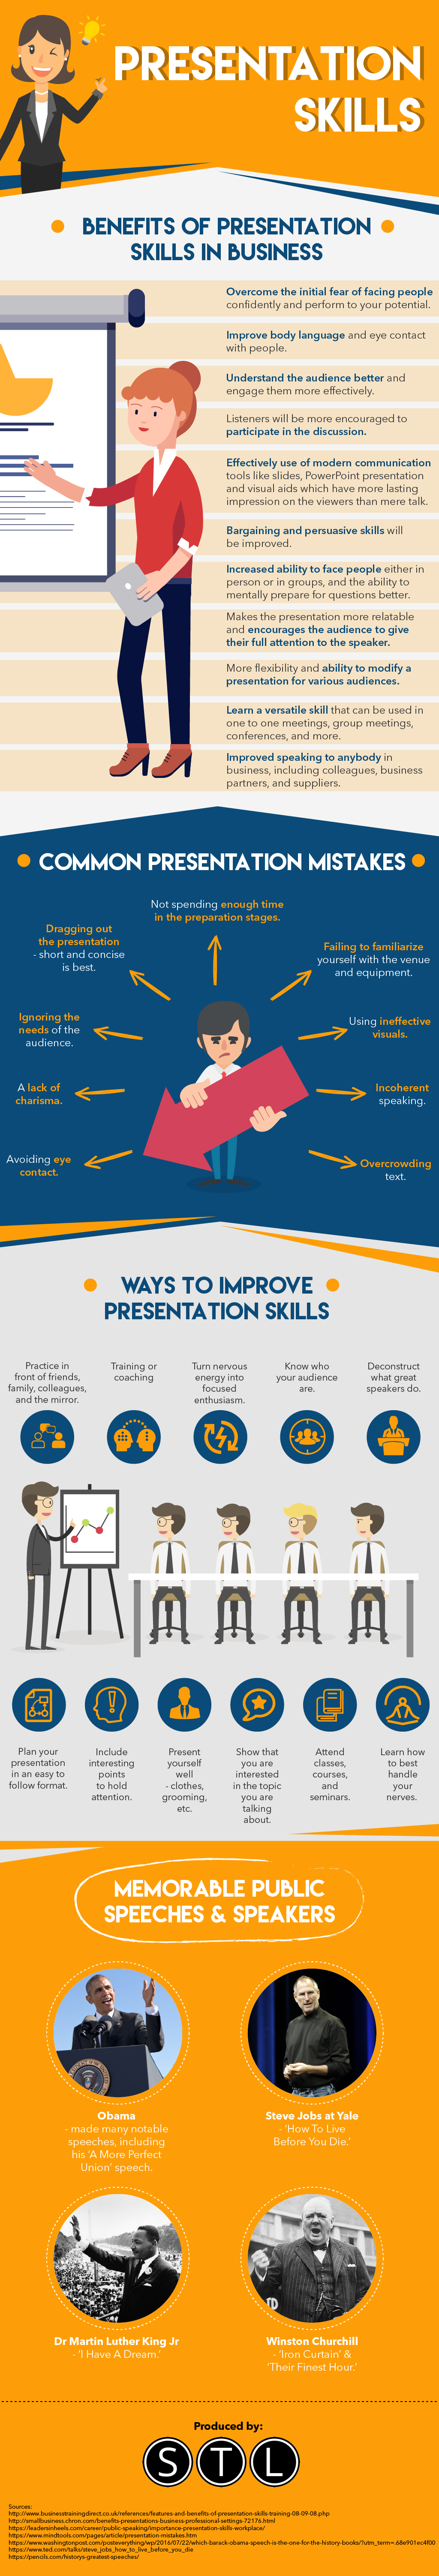 Benefits of Presentation Skills in Business